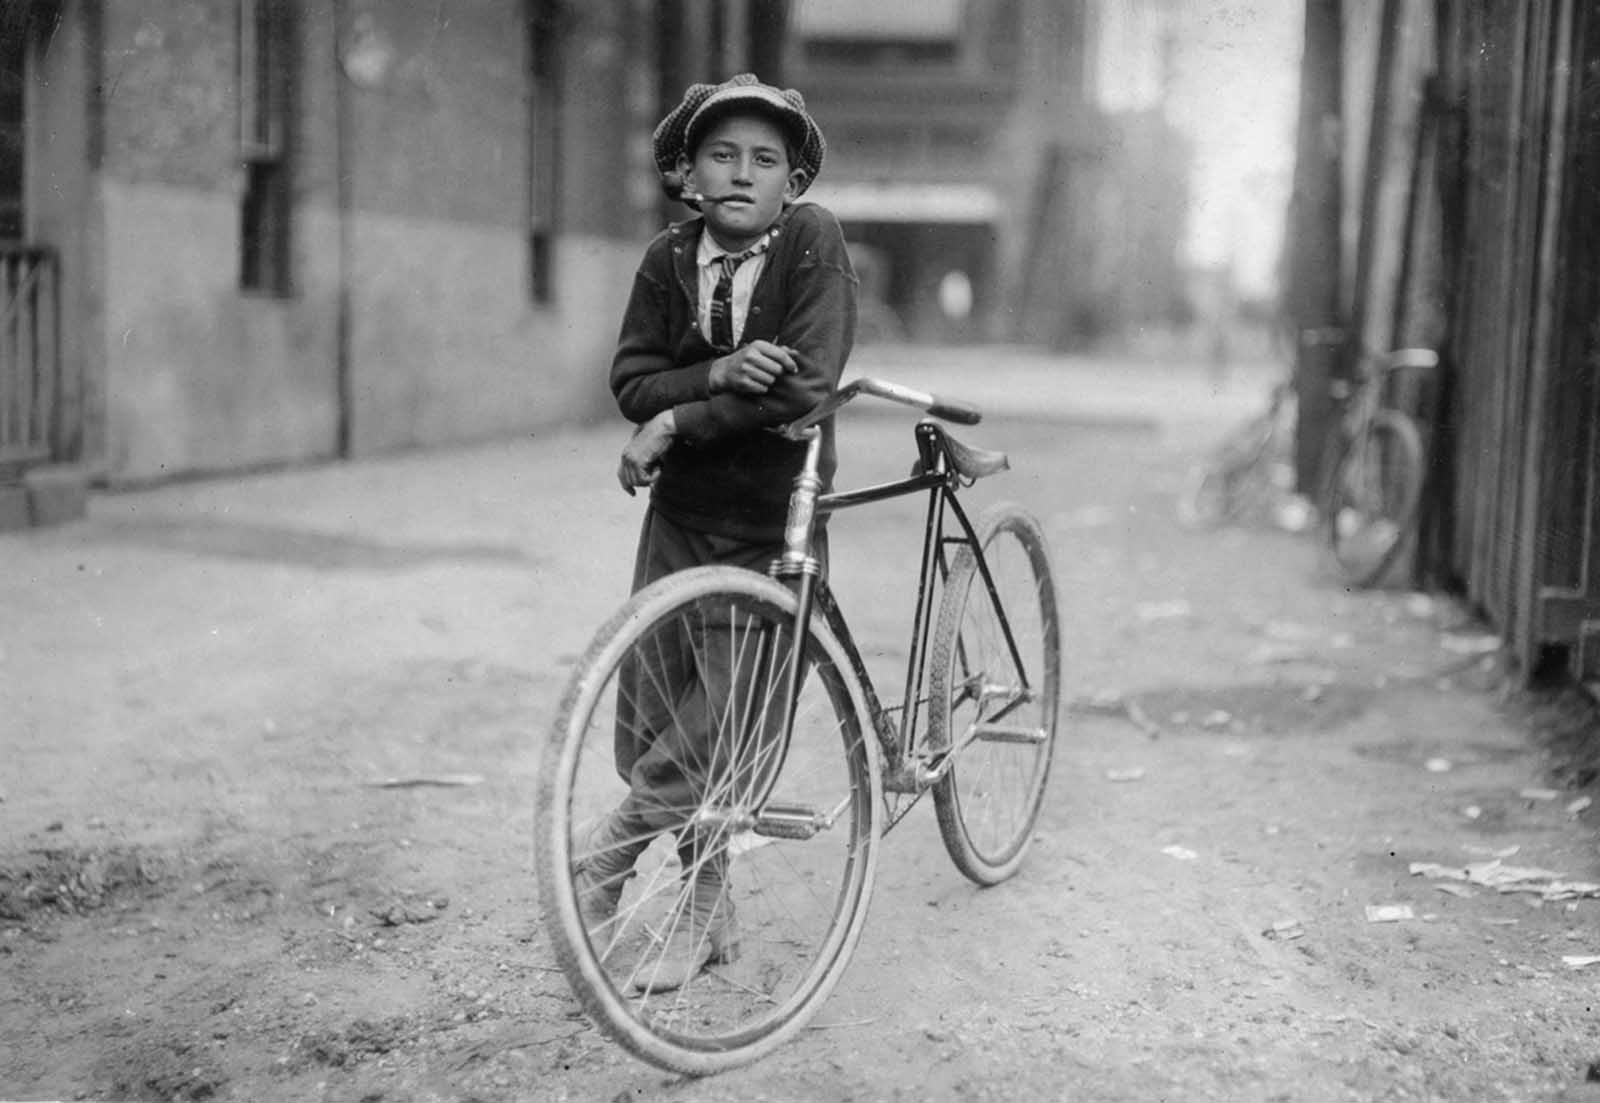 A pipe-smoking messenger boy working for Mackay Telegraph Company. He said he was fifteen years old. Photographed in Waco, Texas in September of 1913.